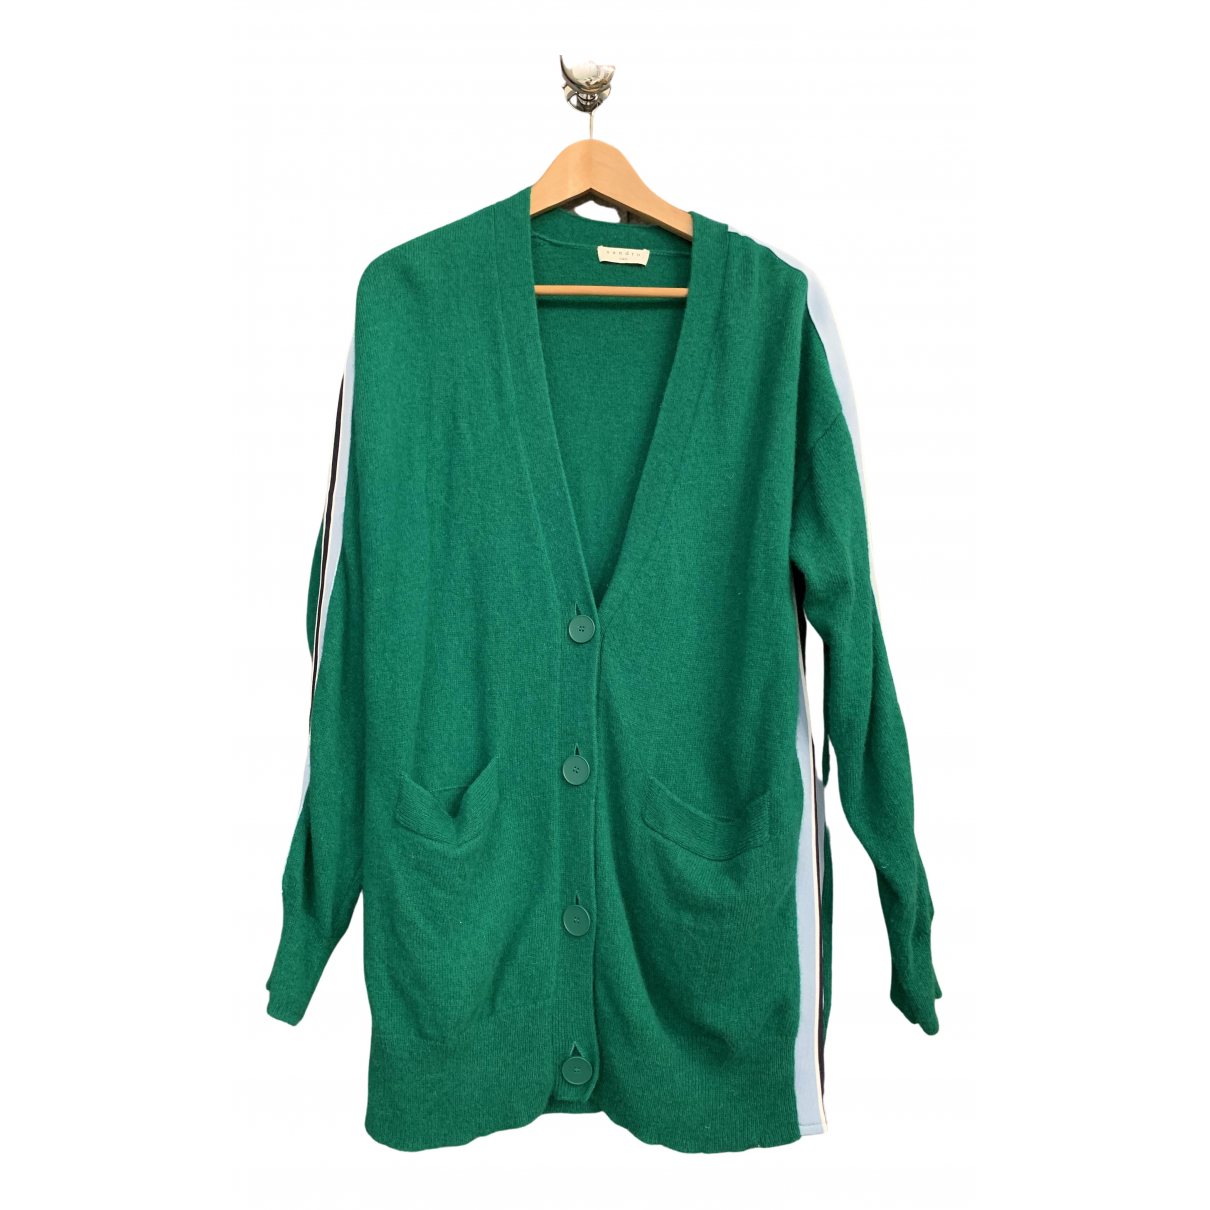 Sandro N Green Wool Knitwear for Women 38 FR